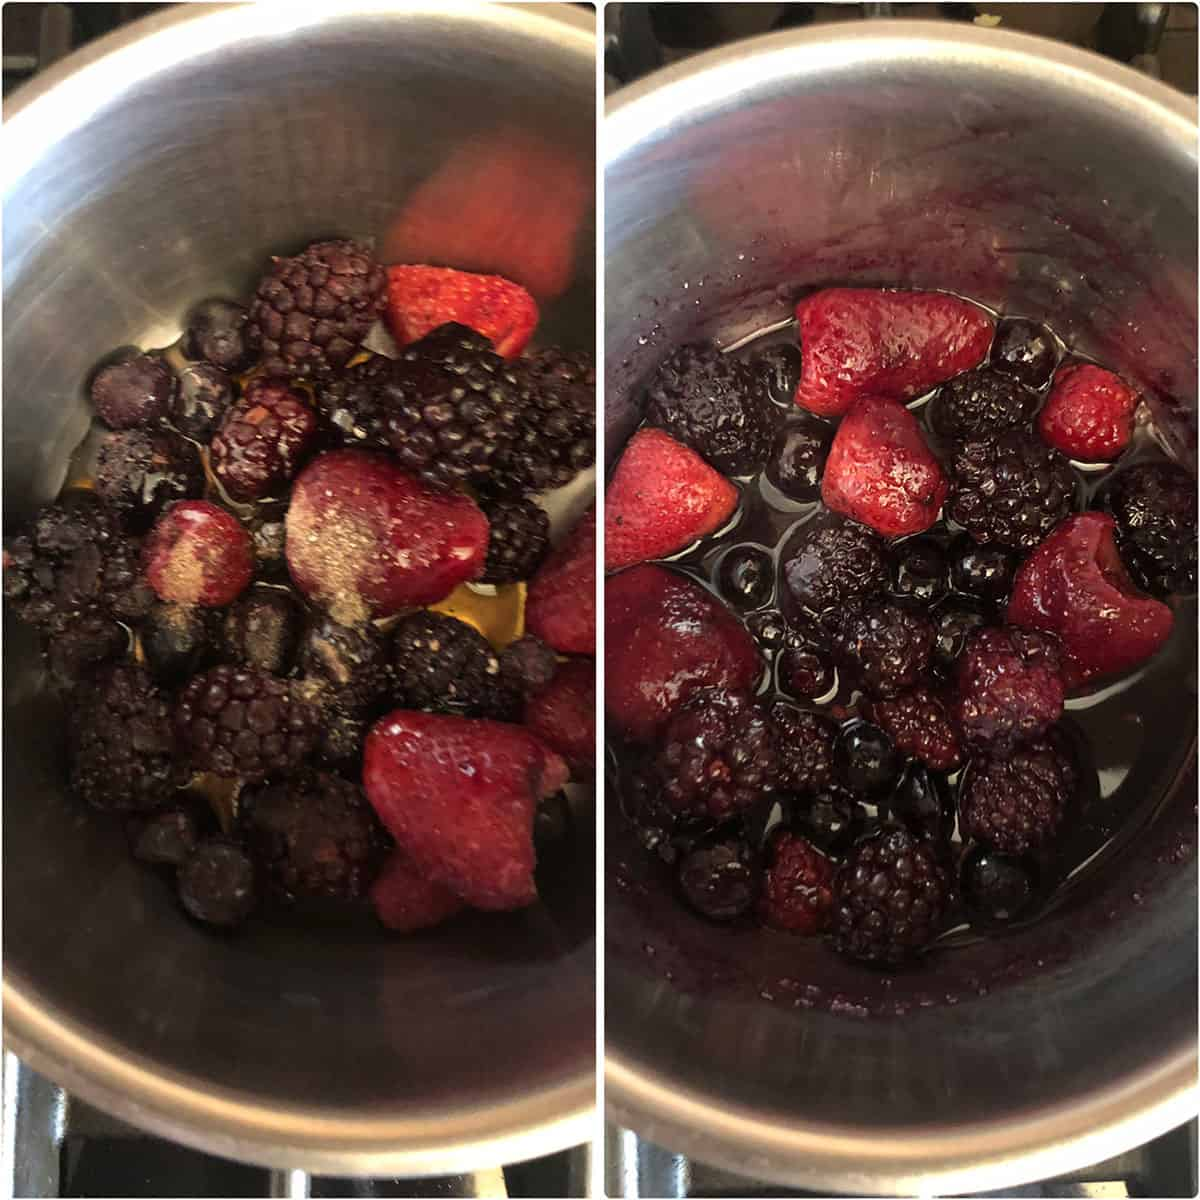 Berries being cooked in a saucepan until soft